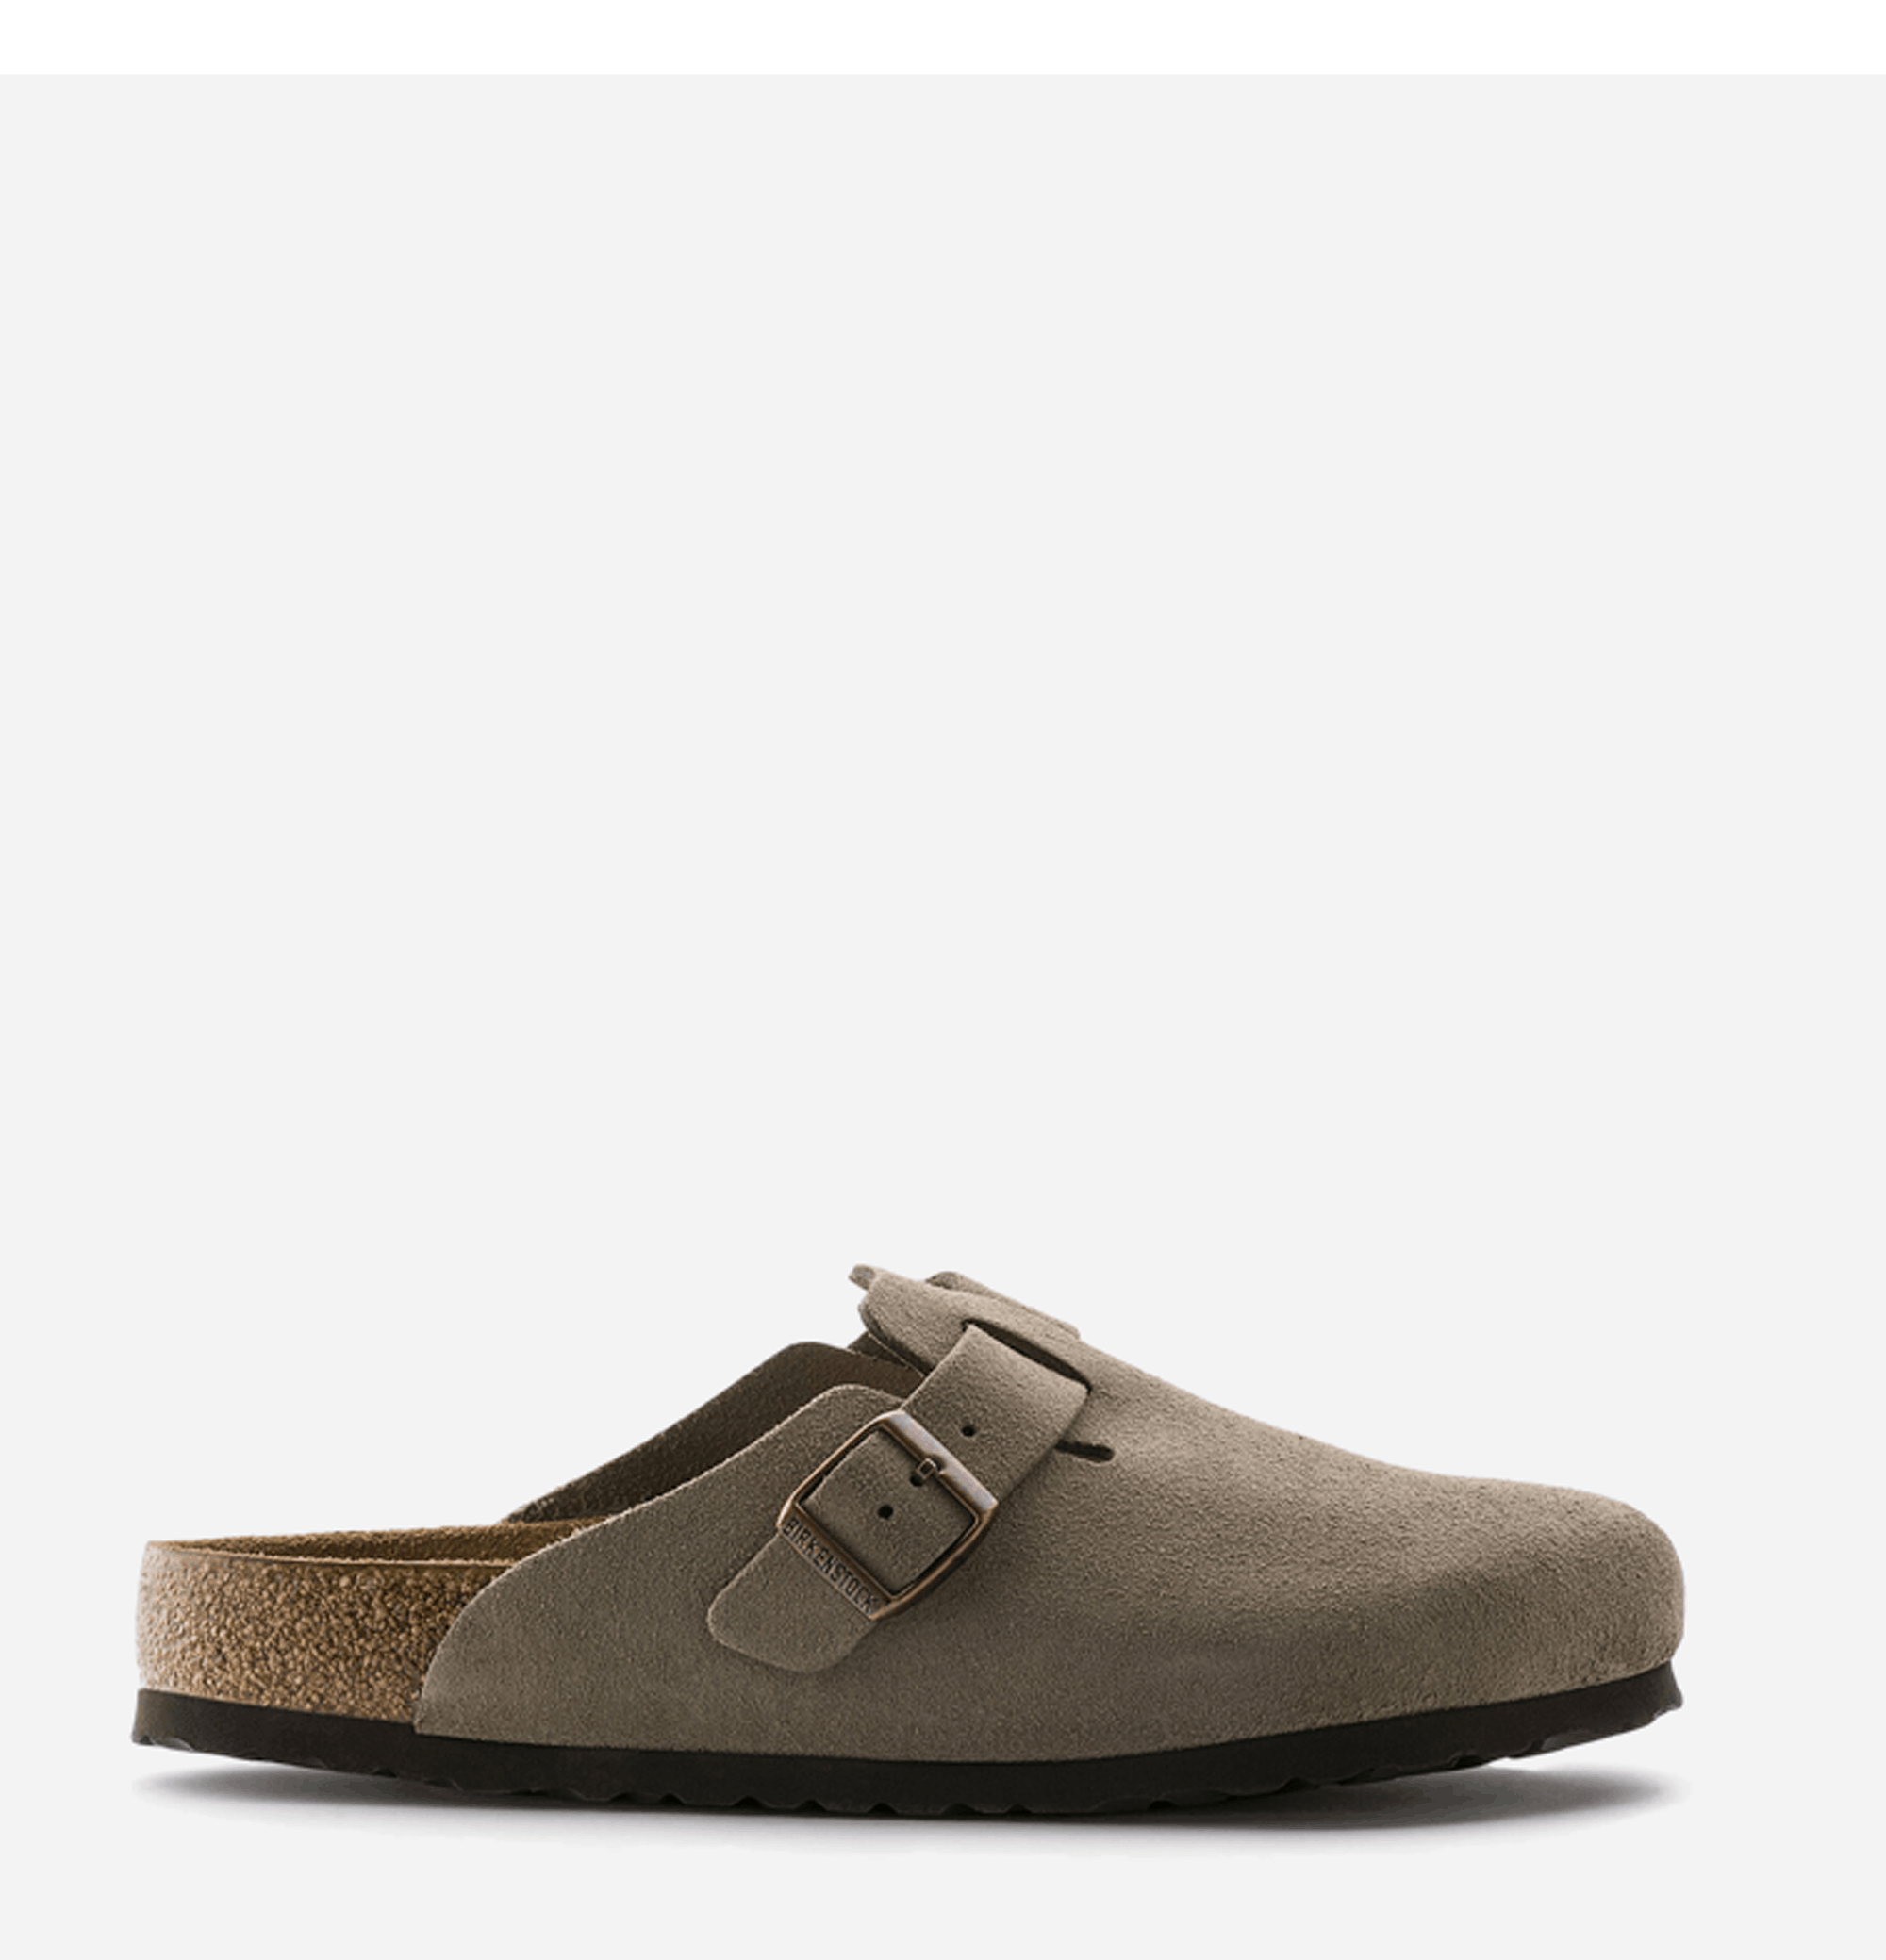 Womens Boston Sandals Taupe